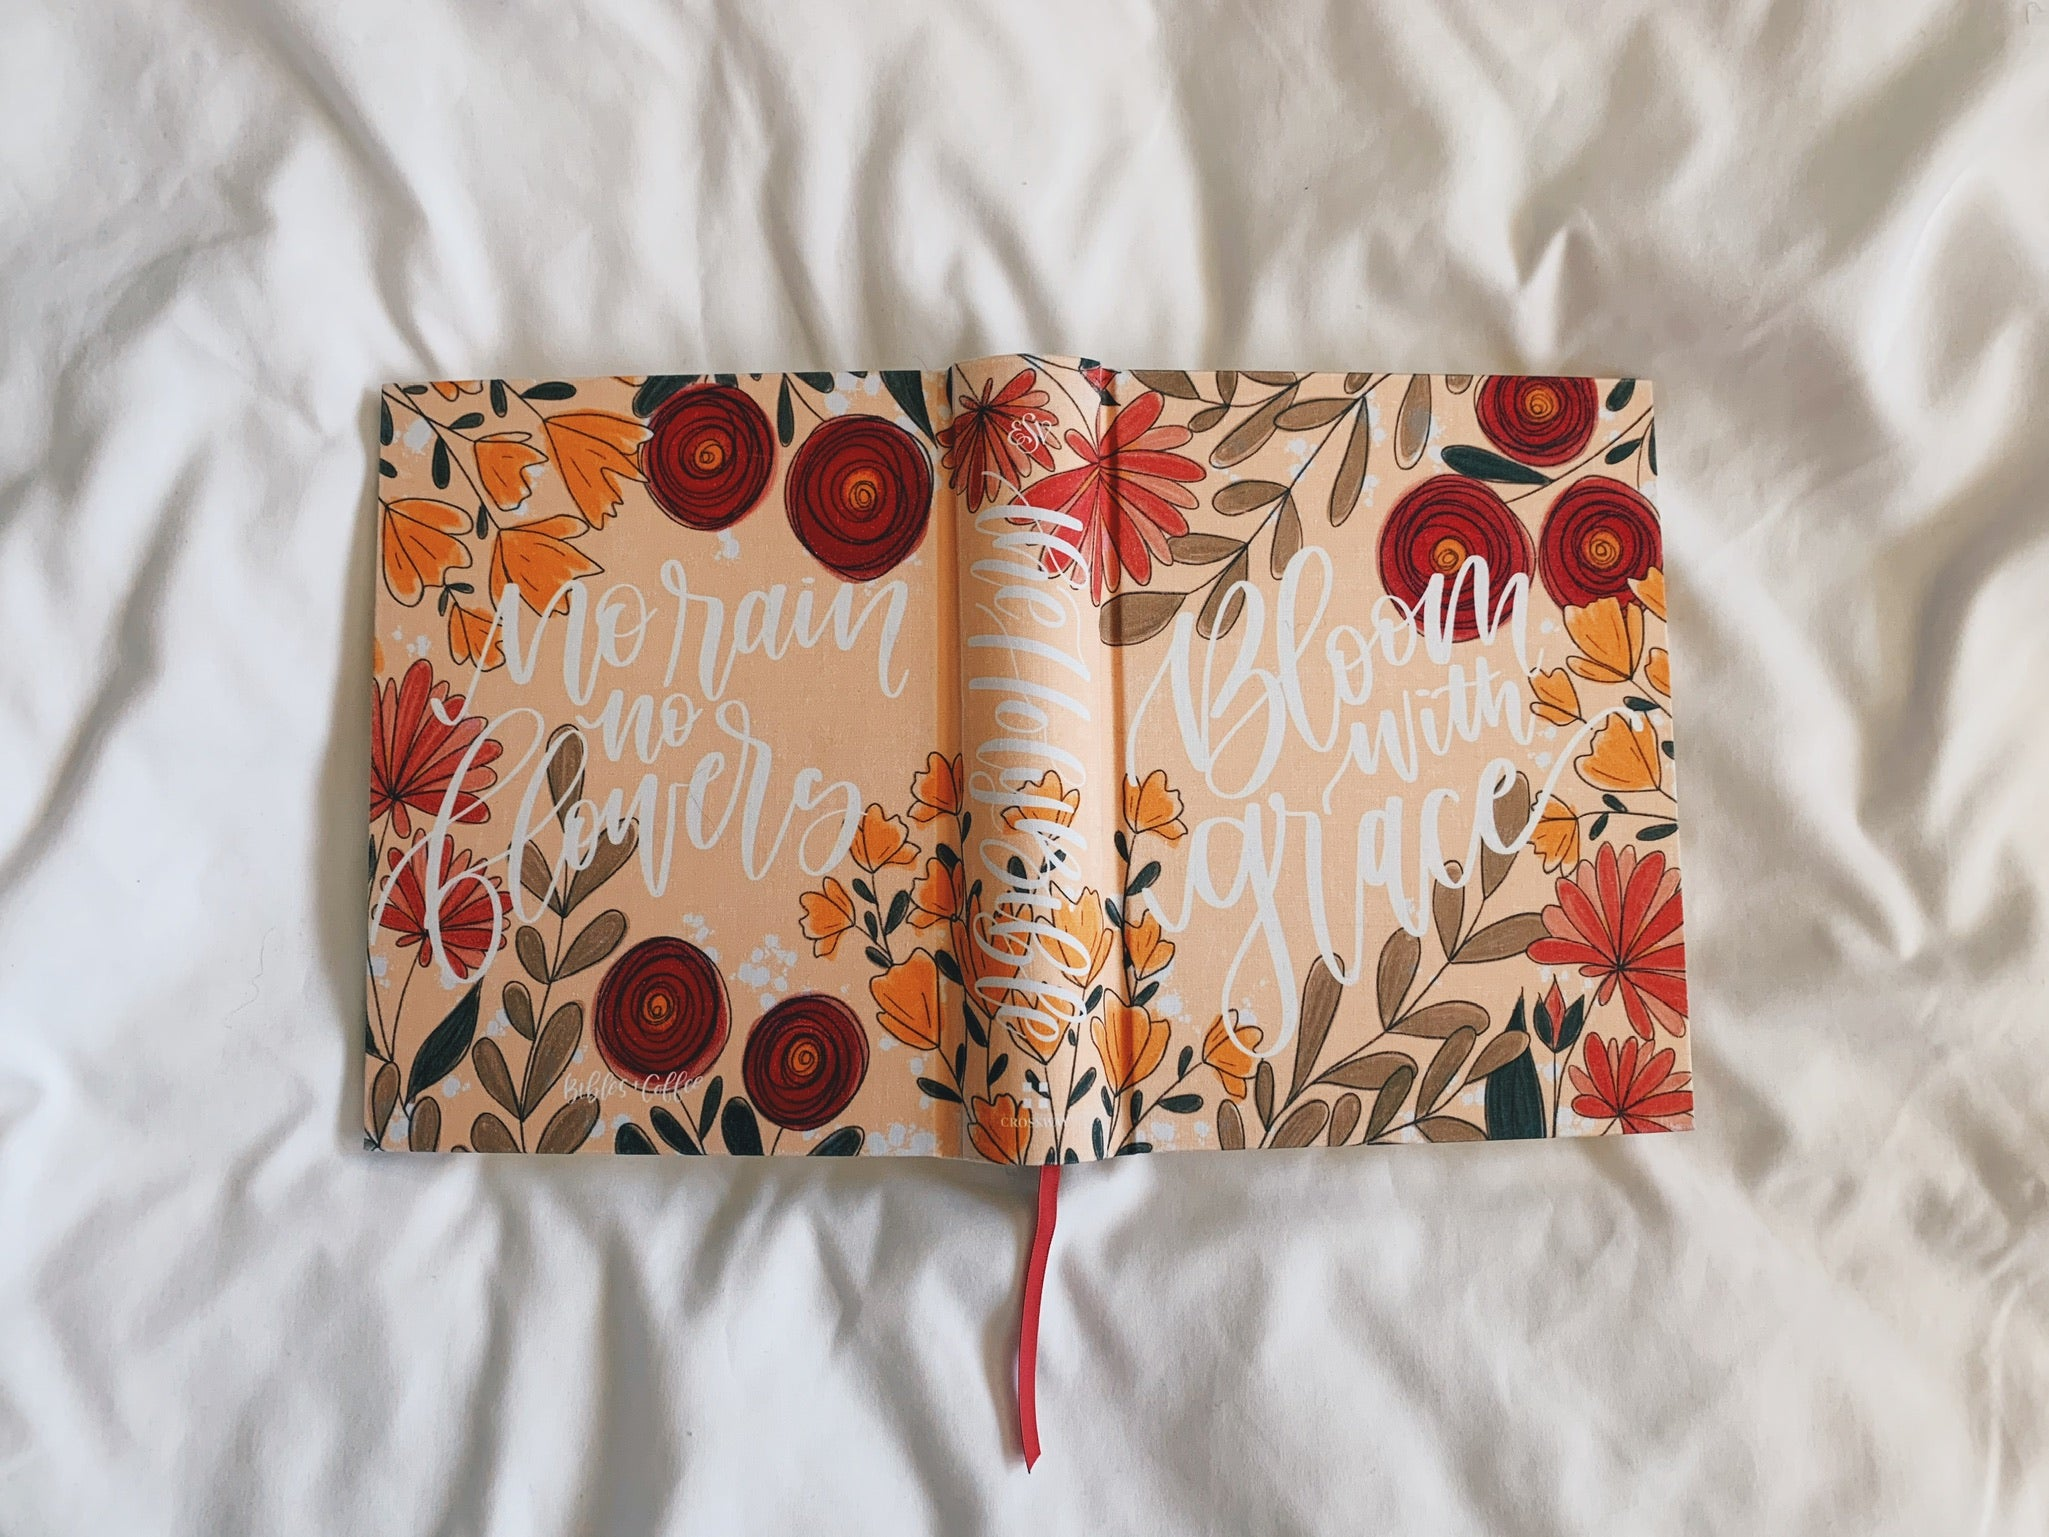 Full Bloom ESV Journaling Bible - Bibles and Coffee